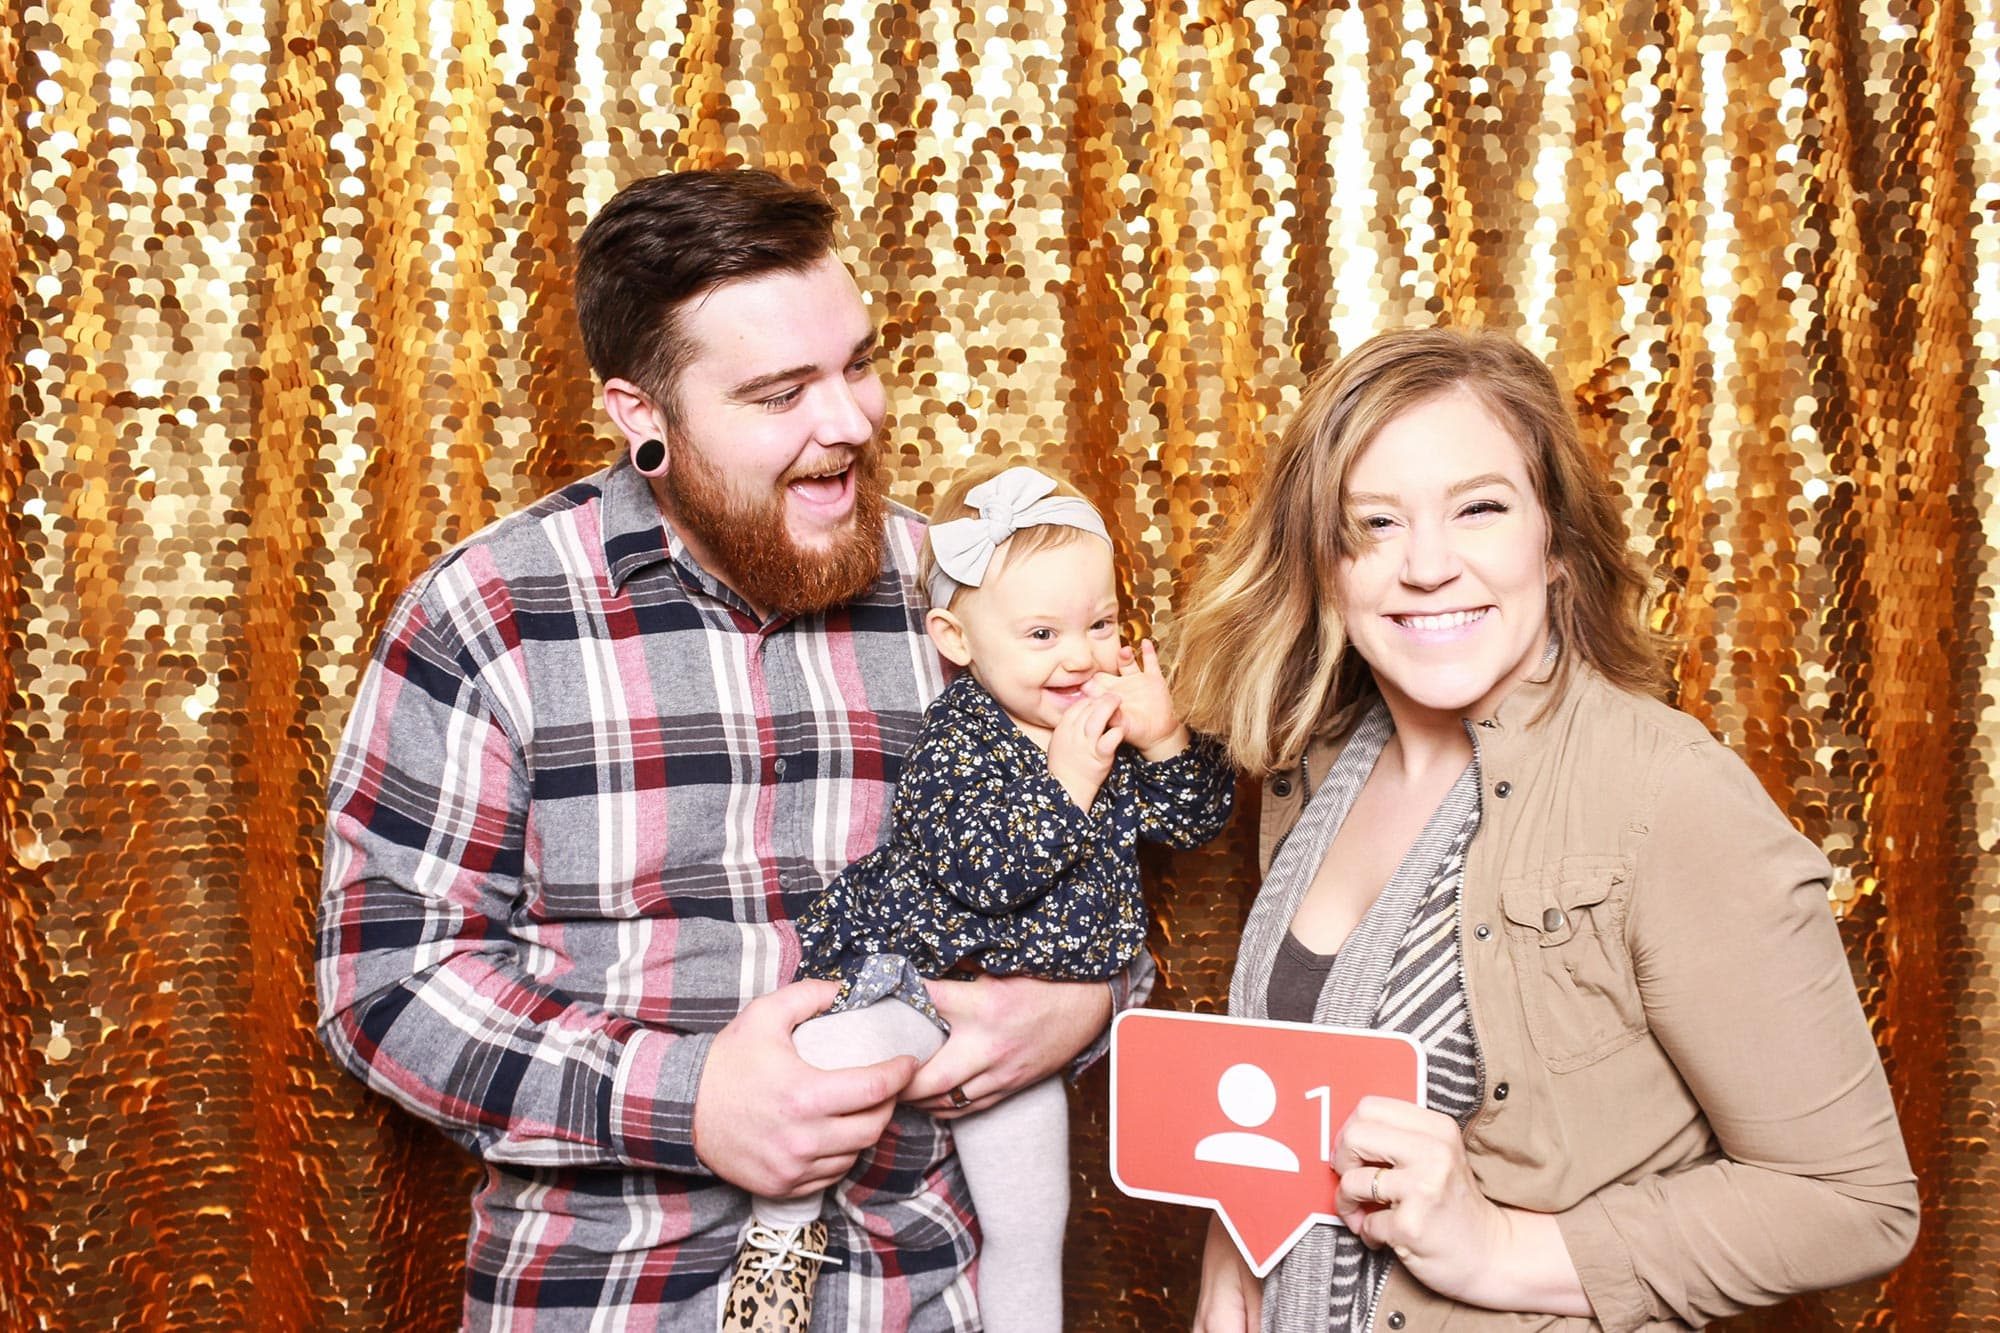 Pregnancy announcement photo booth gold background